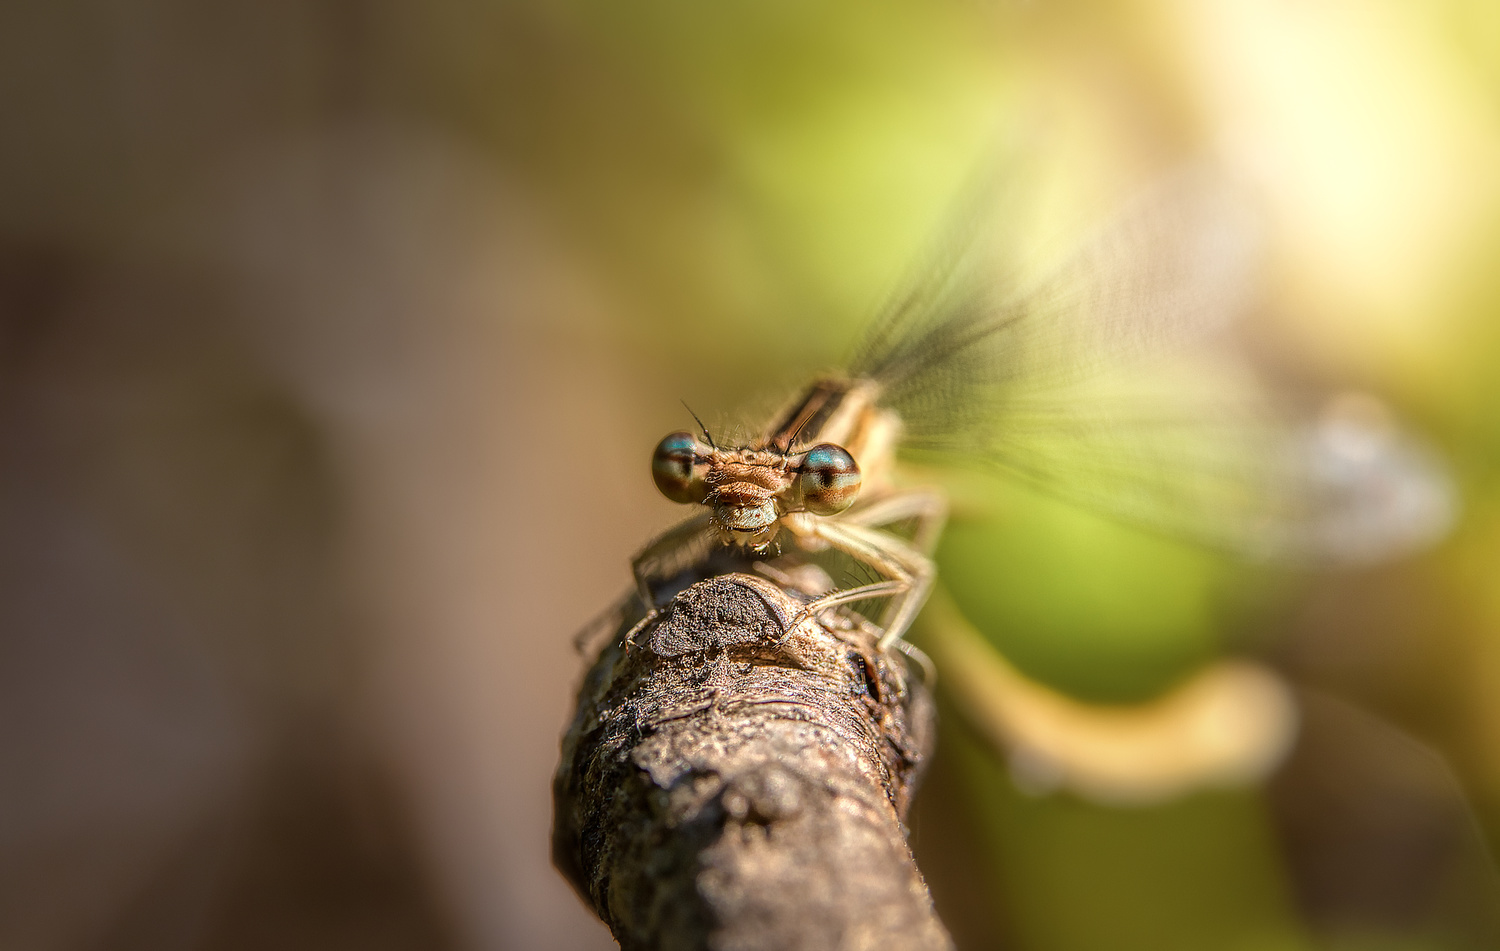 Dragonfly by Tiago Marques